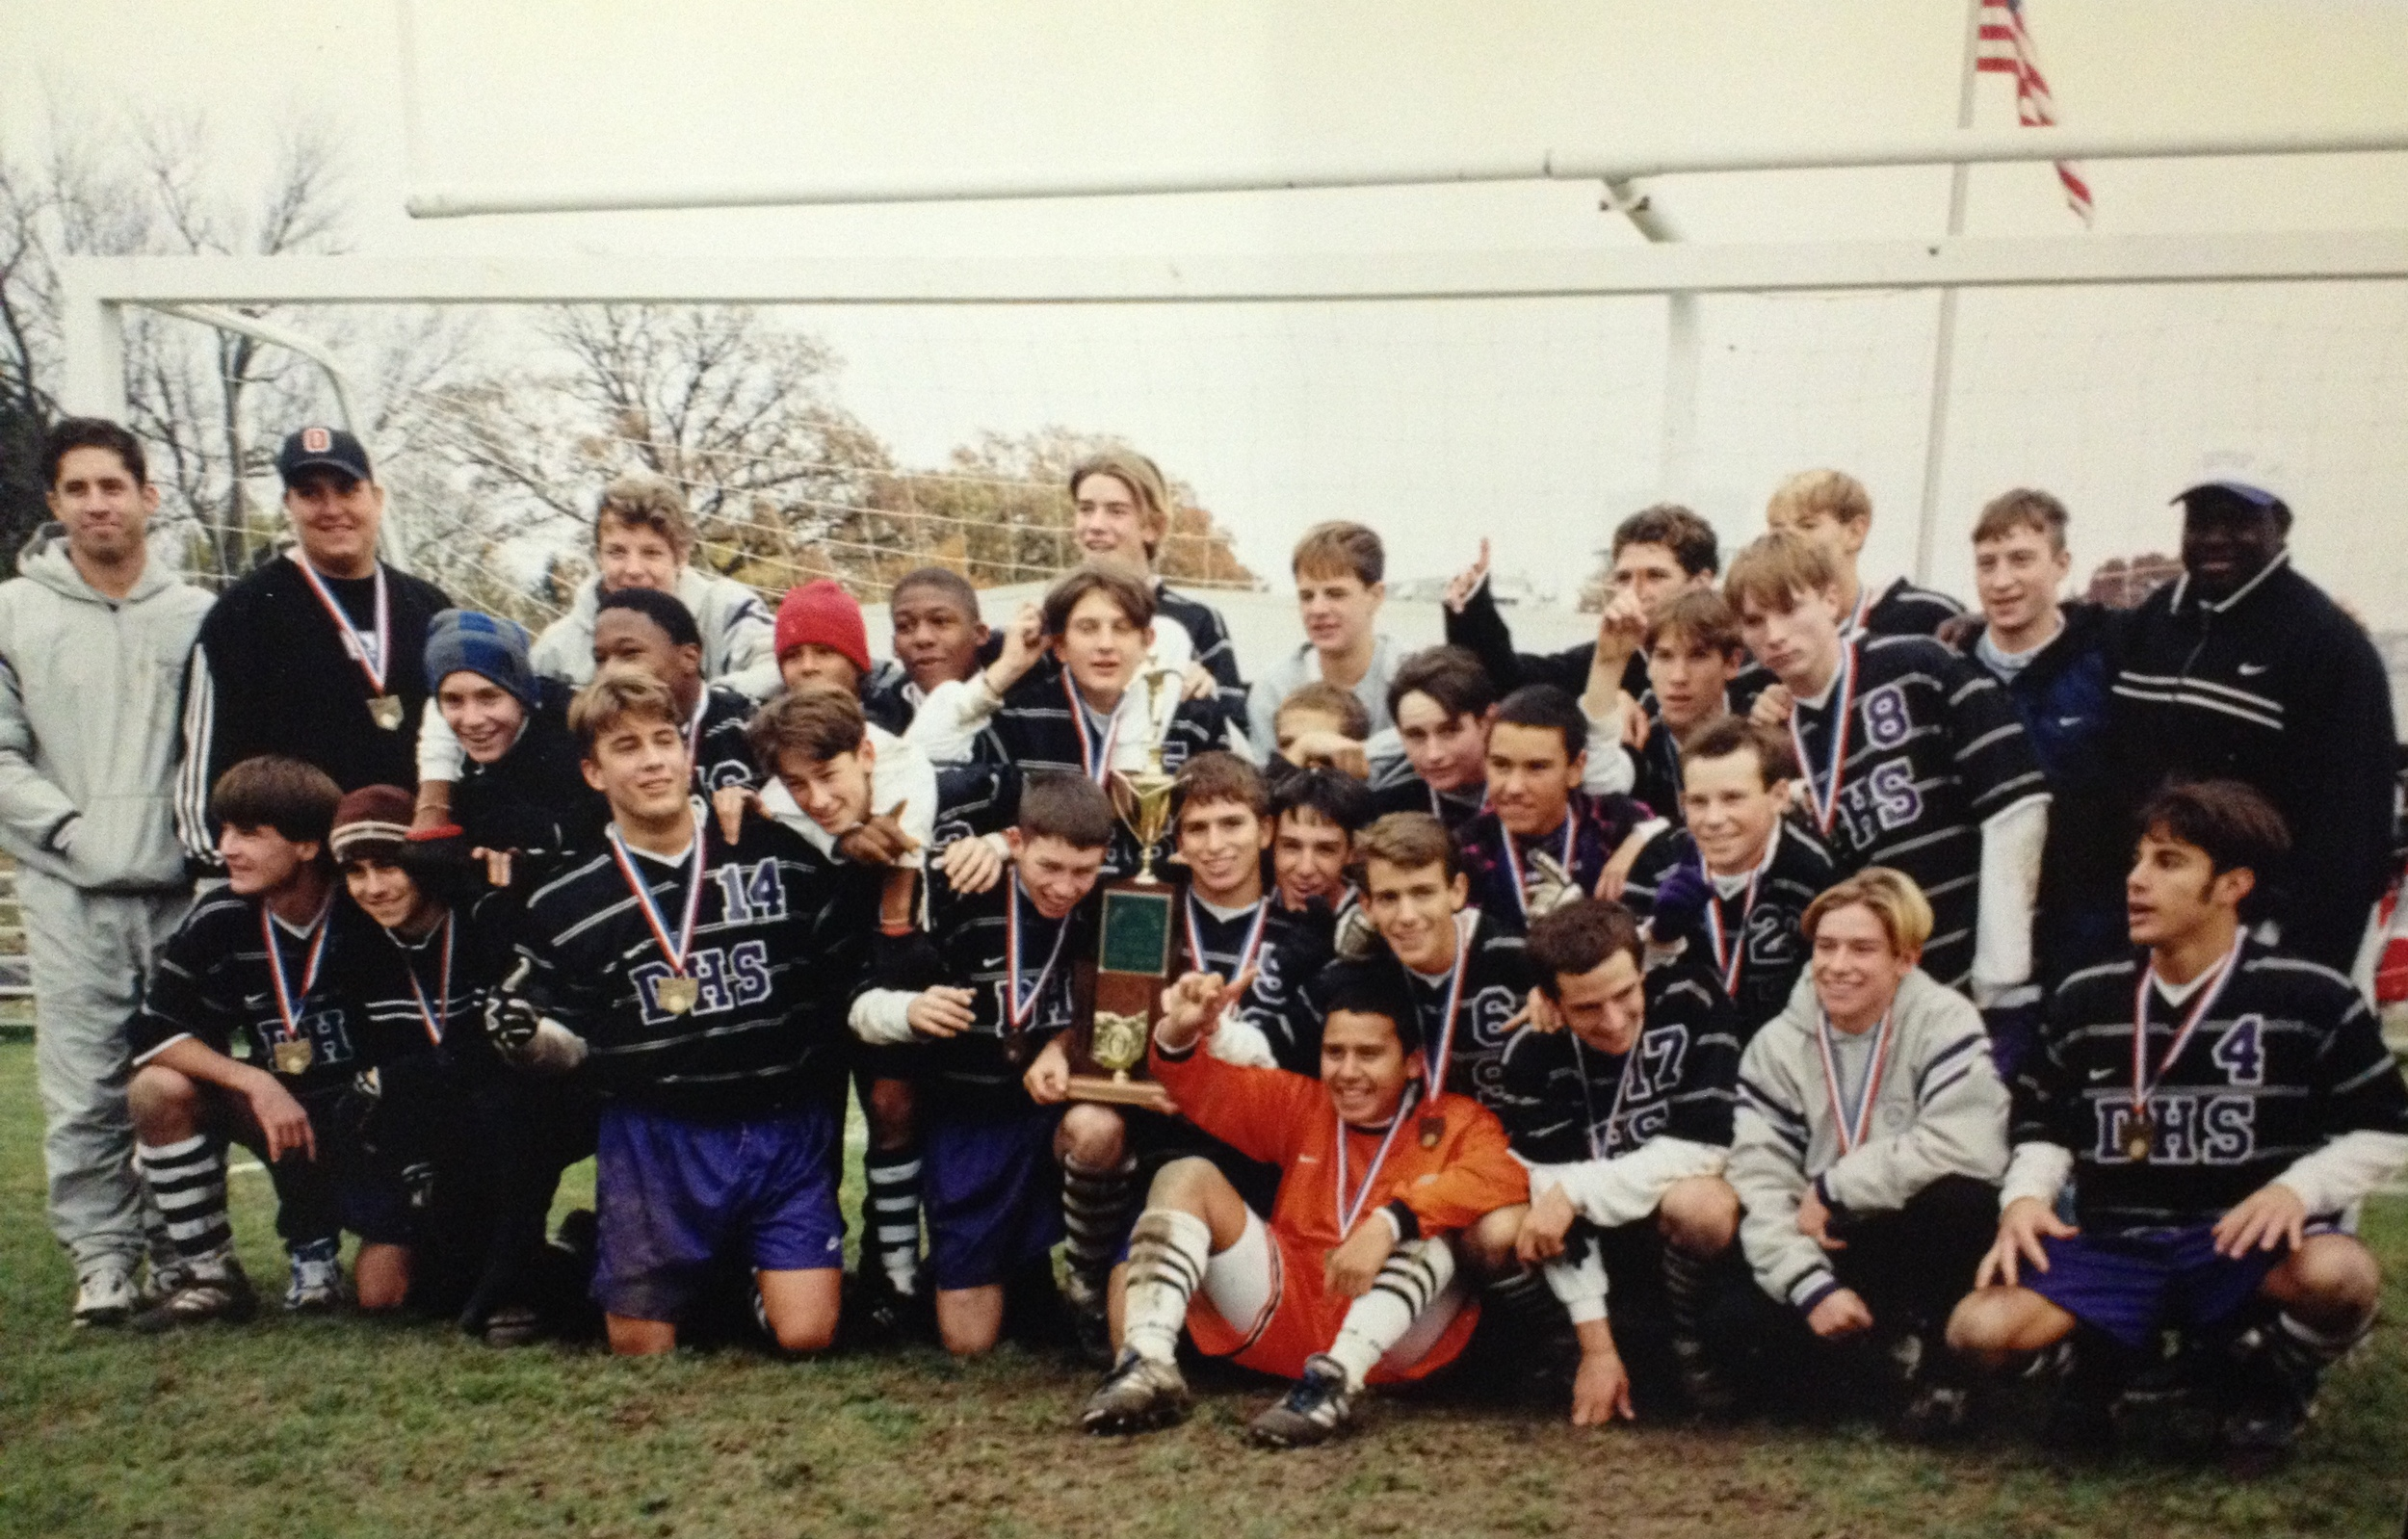 1997 Division II State Champions